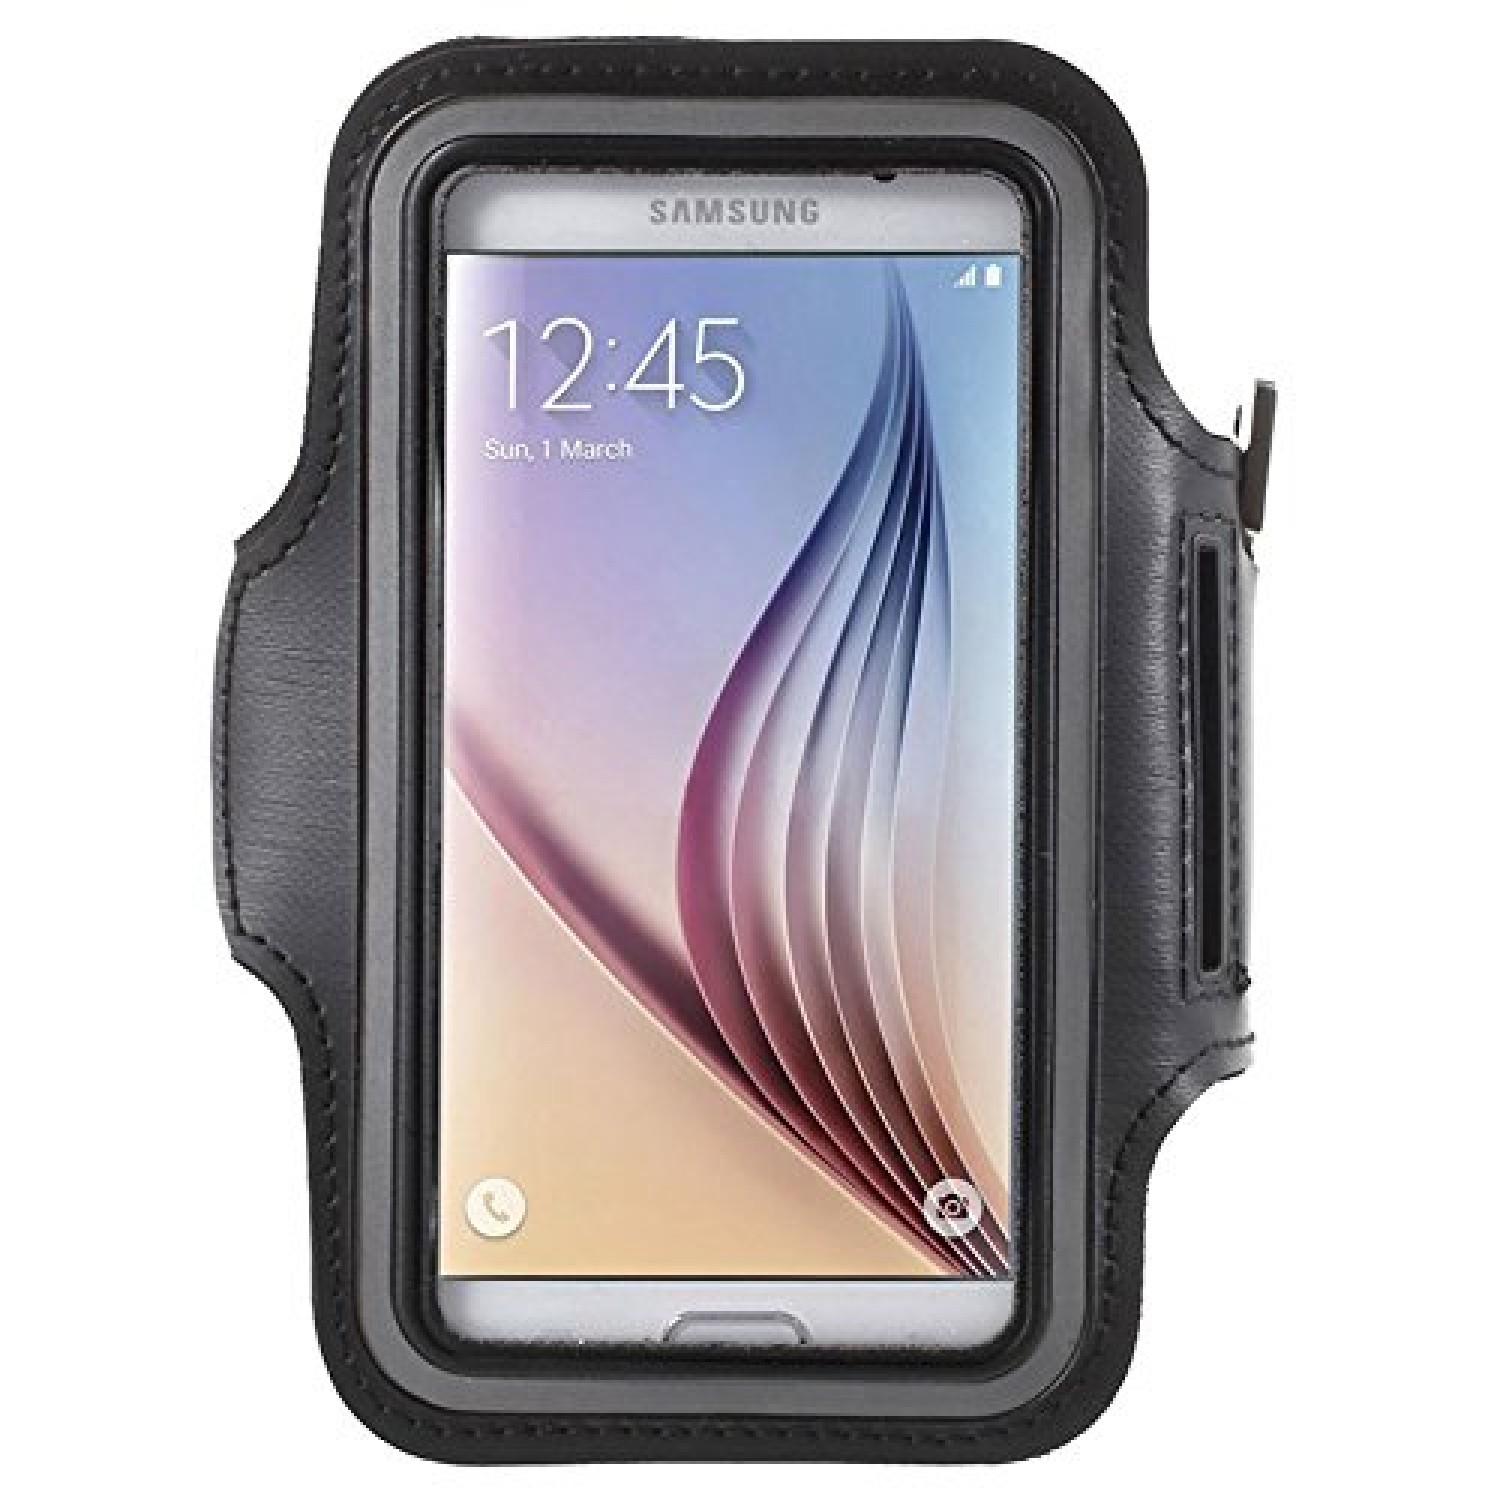 info for def8d d3d12 Samsung Galaxy S7 Edge Protective Armband Build in Key,with Credit ...